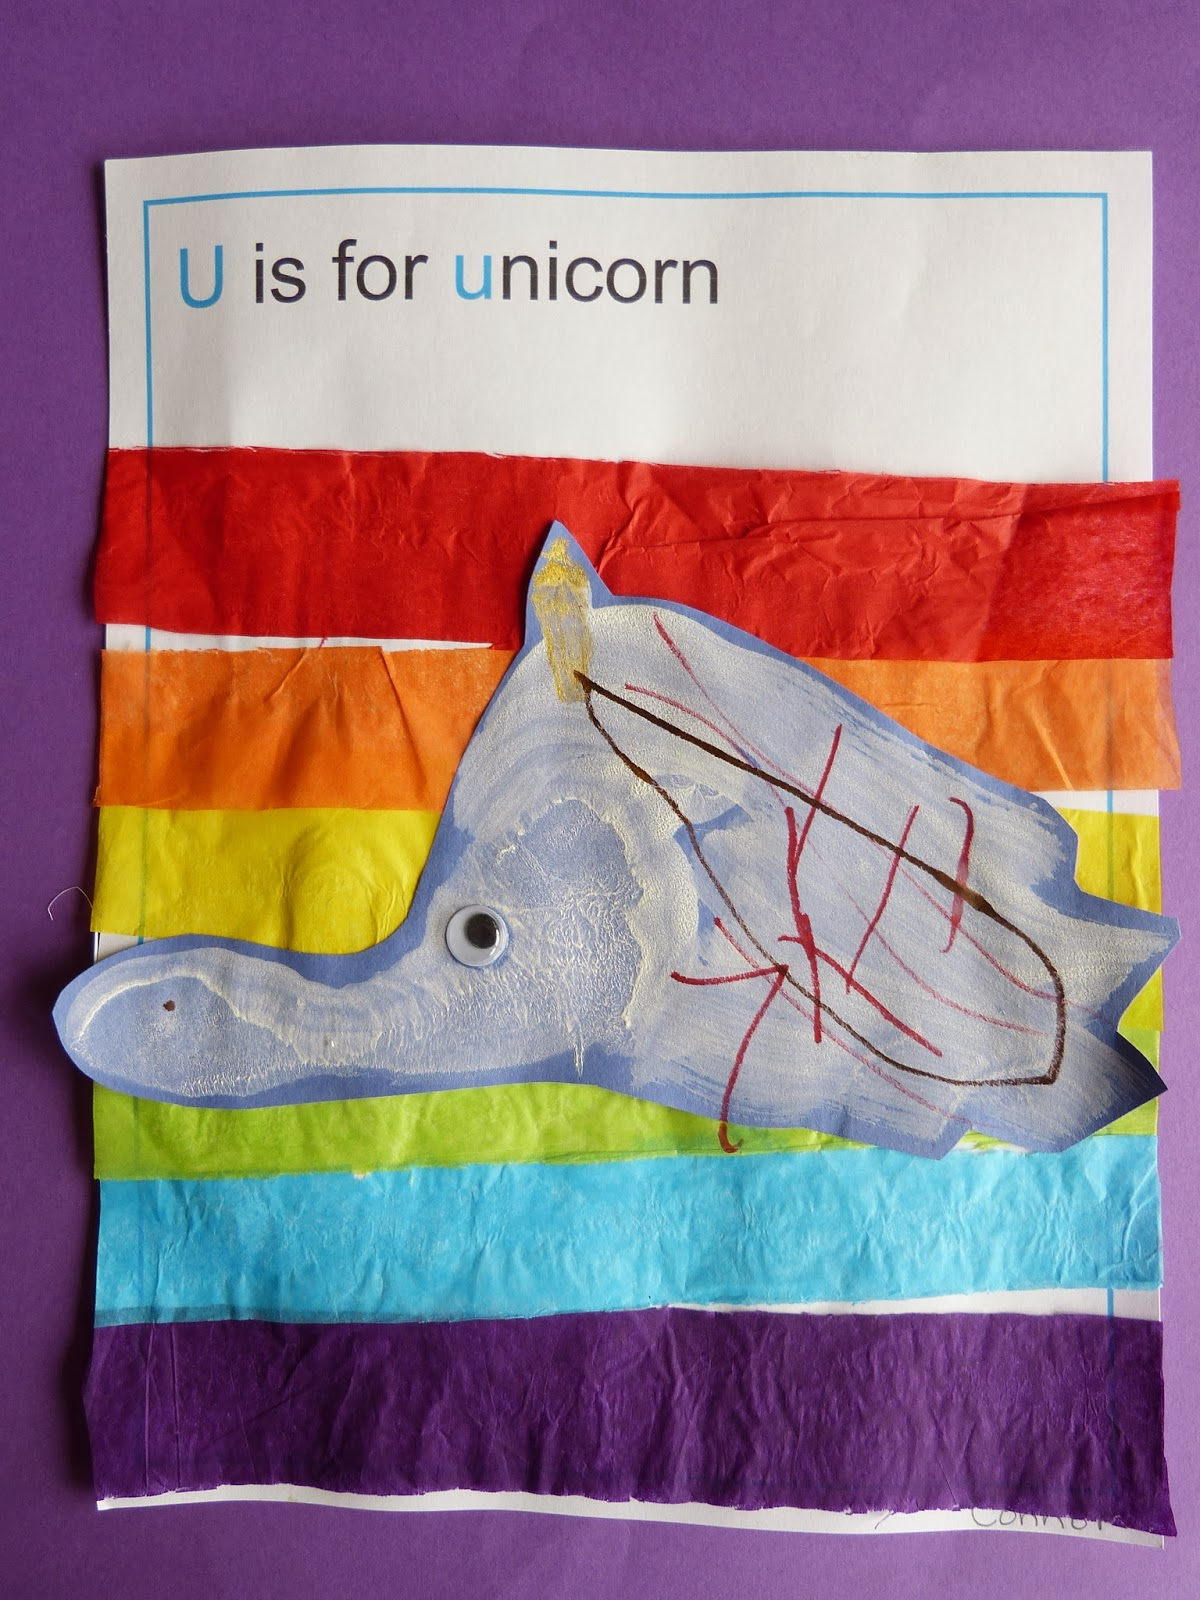 Unicorn stick horses, sensory bins, books and foot prints - fun learning ideas for the letter U!